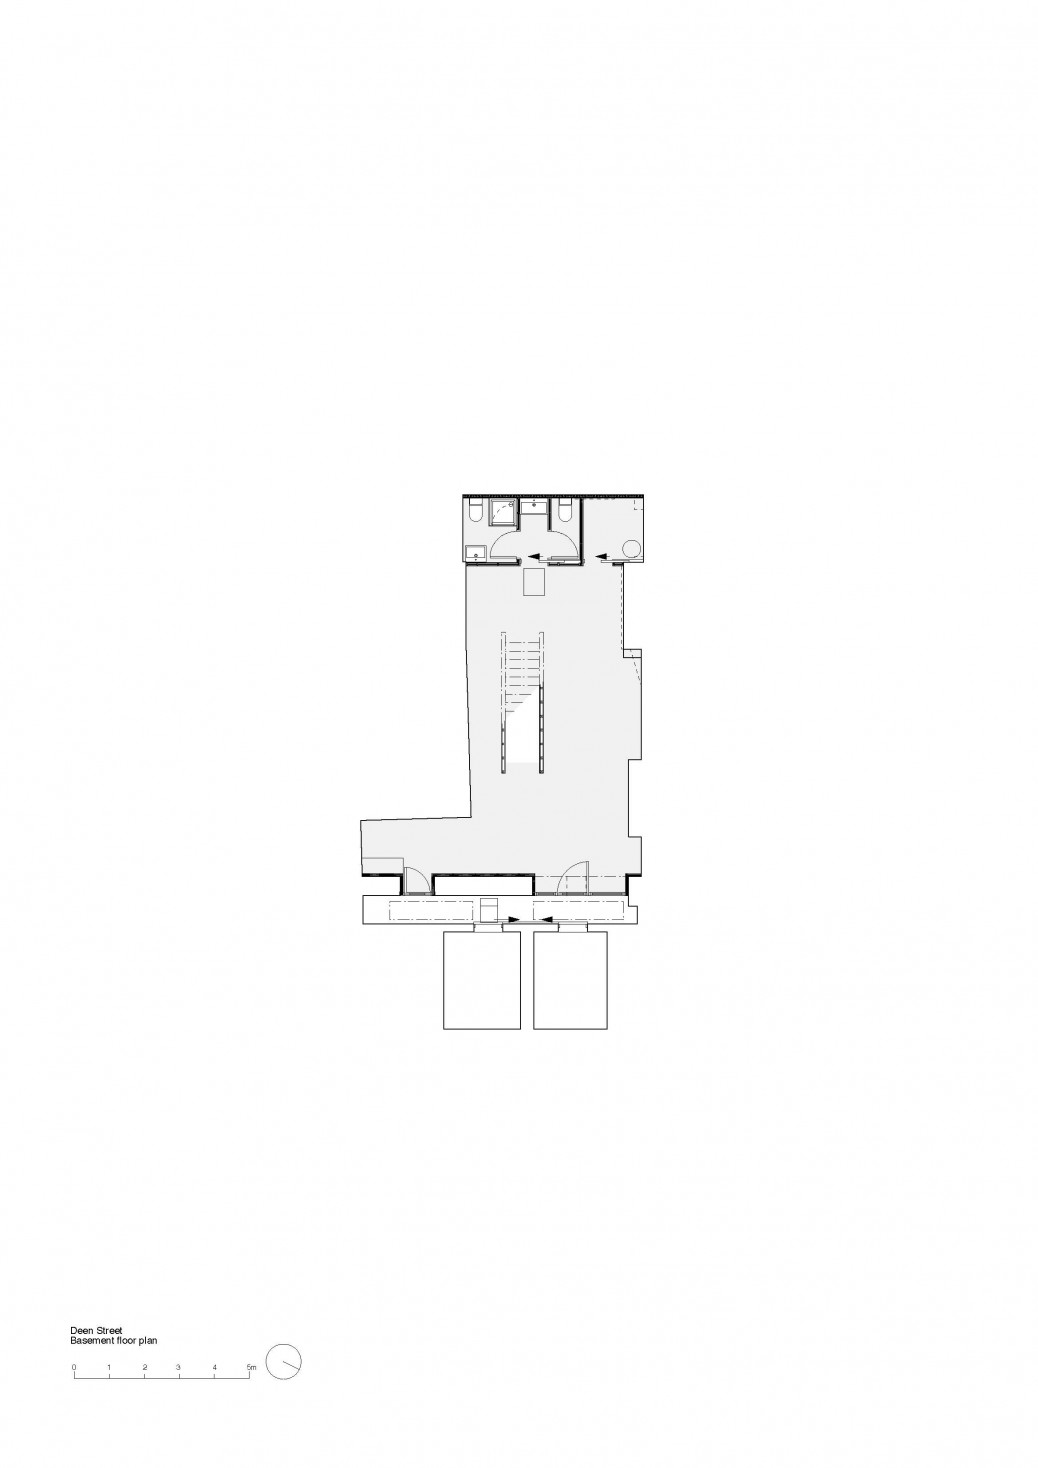 Dean Street basement floor plan